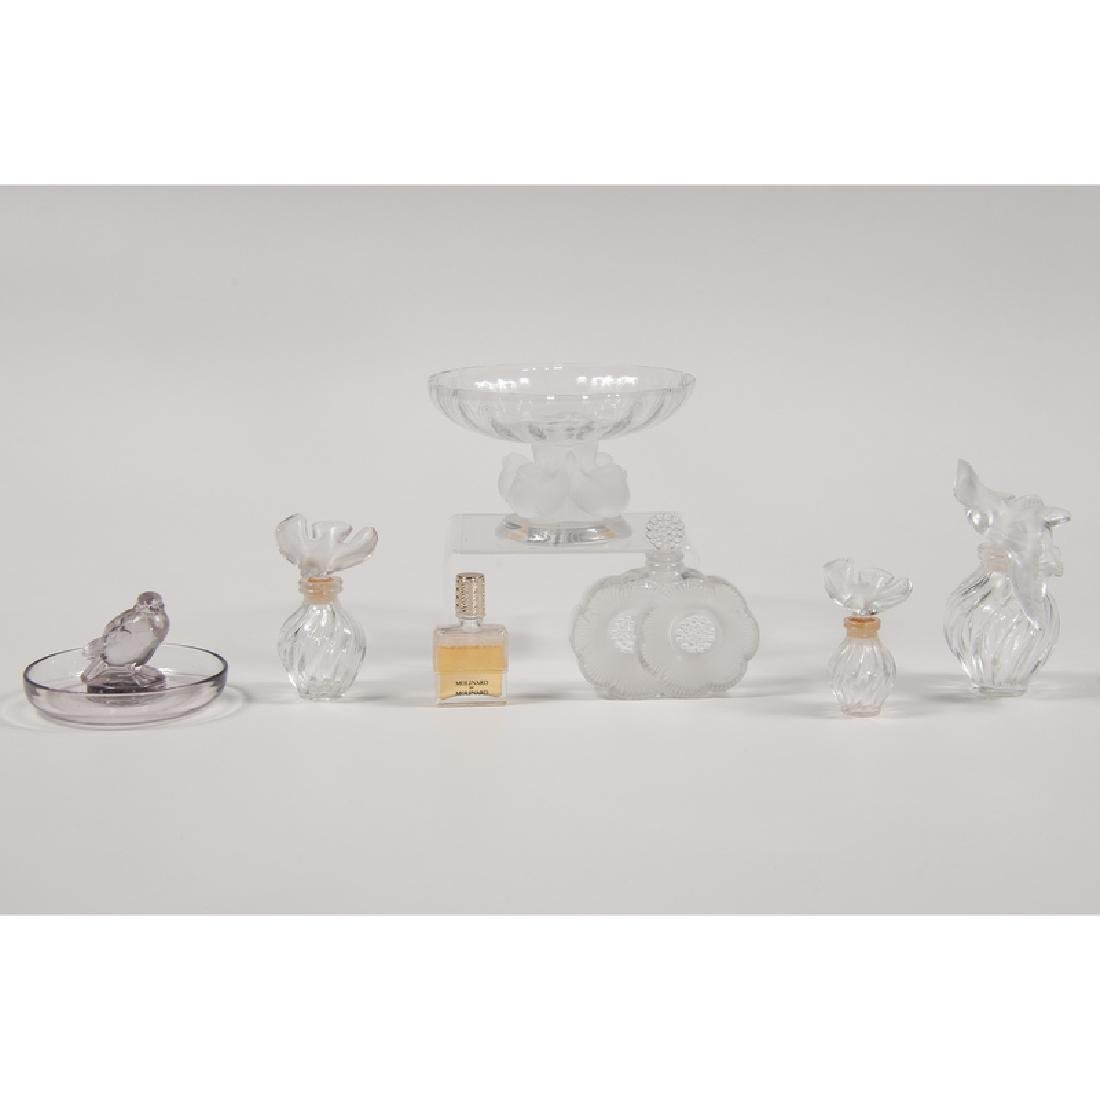 Lalique Perfume Bottles and Dishes